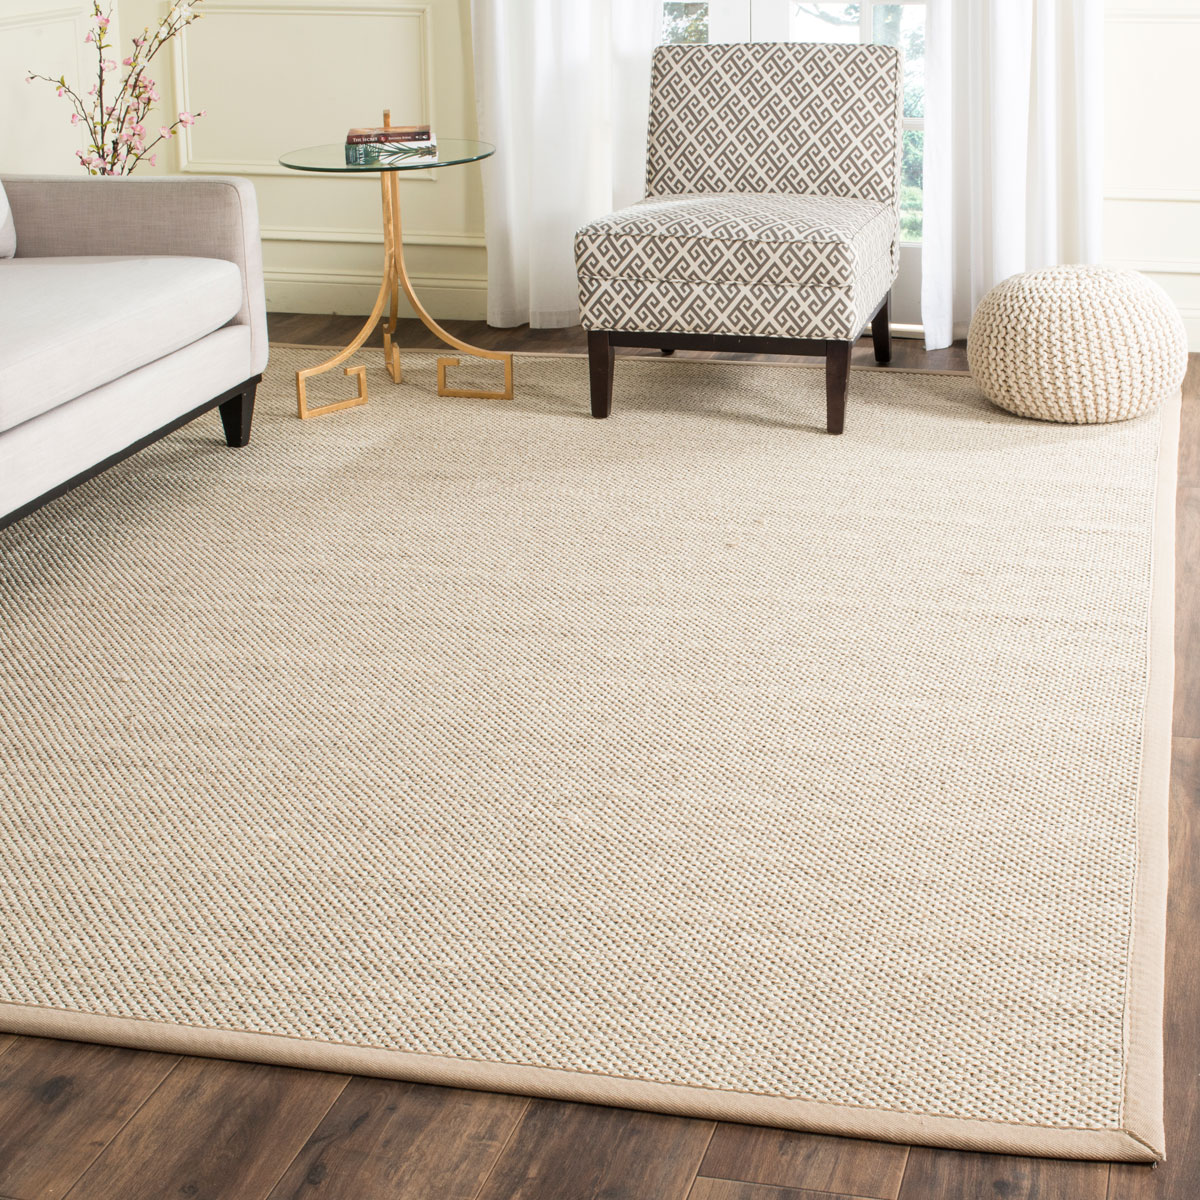 Rug nf143b natural fiber area rugs by safavieh for Area carpets and rugs